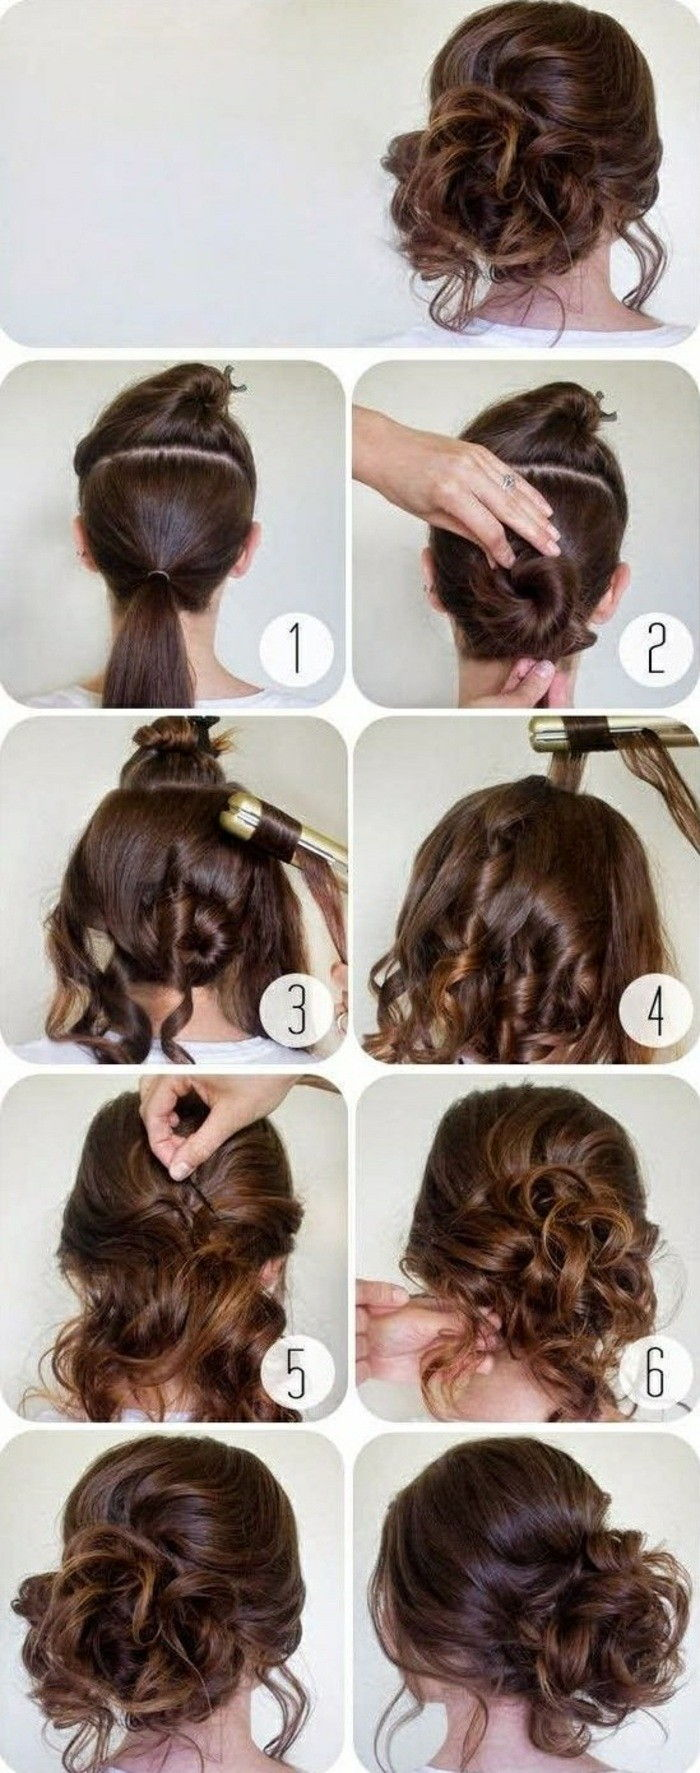 donne fast-acconciature-marrone-capelli-updo-te-making